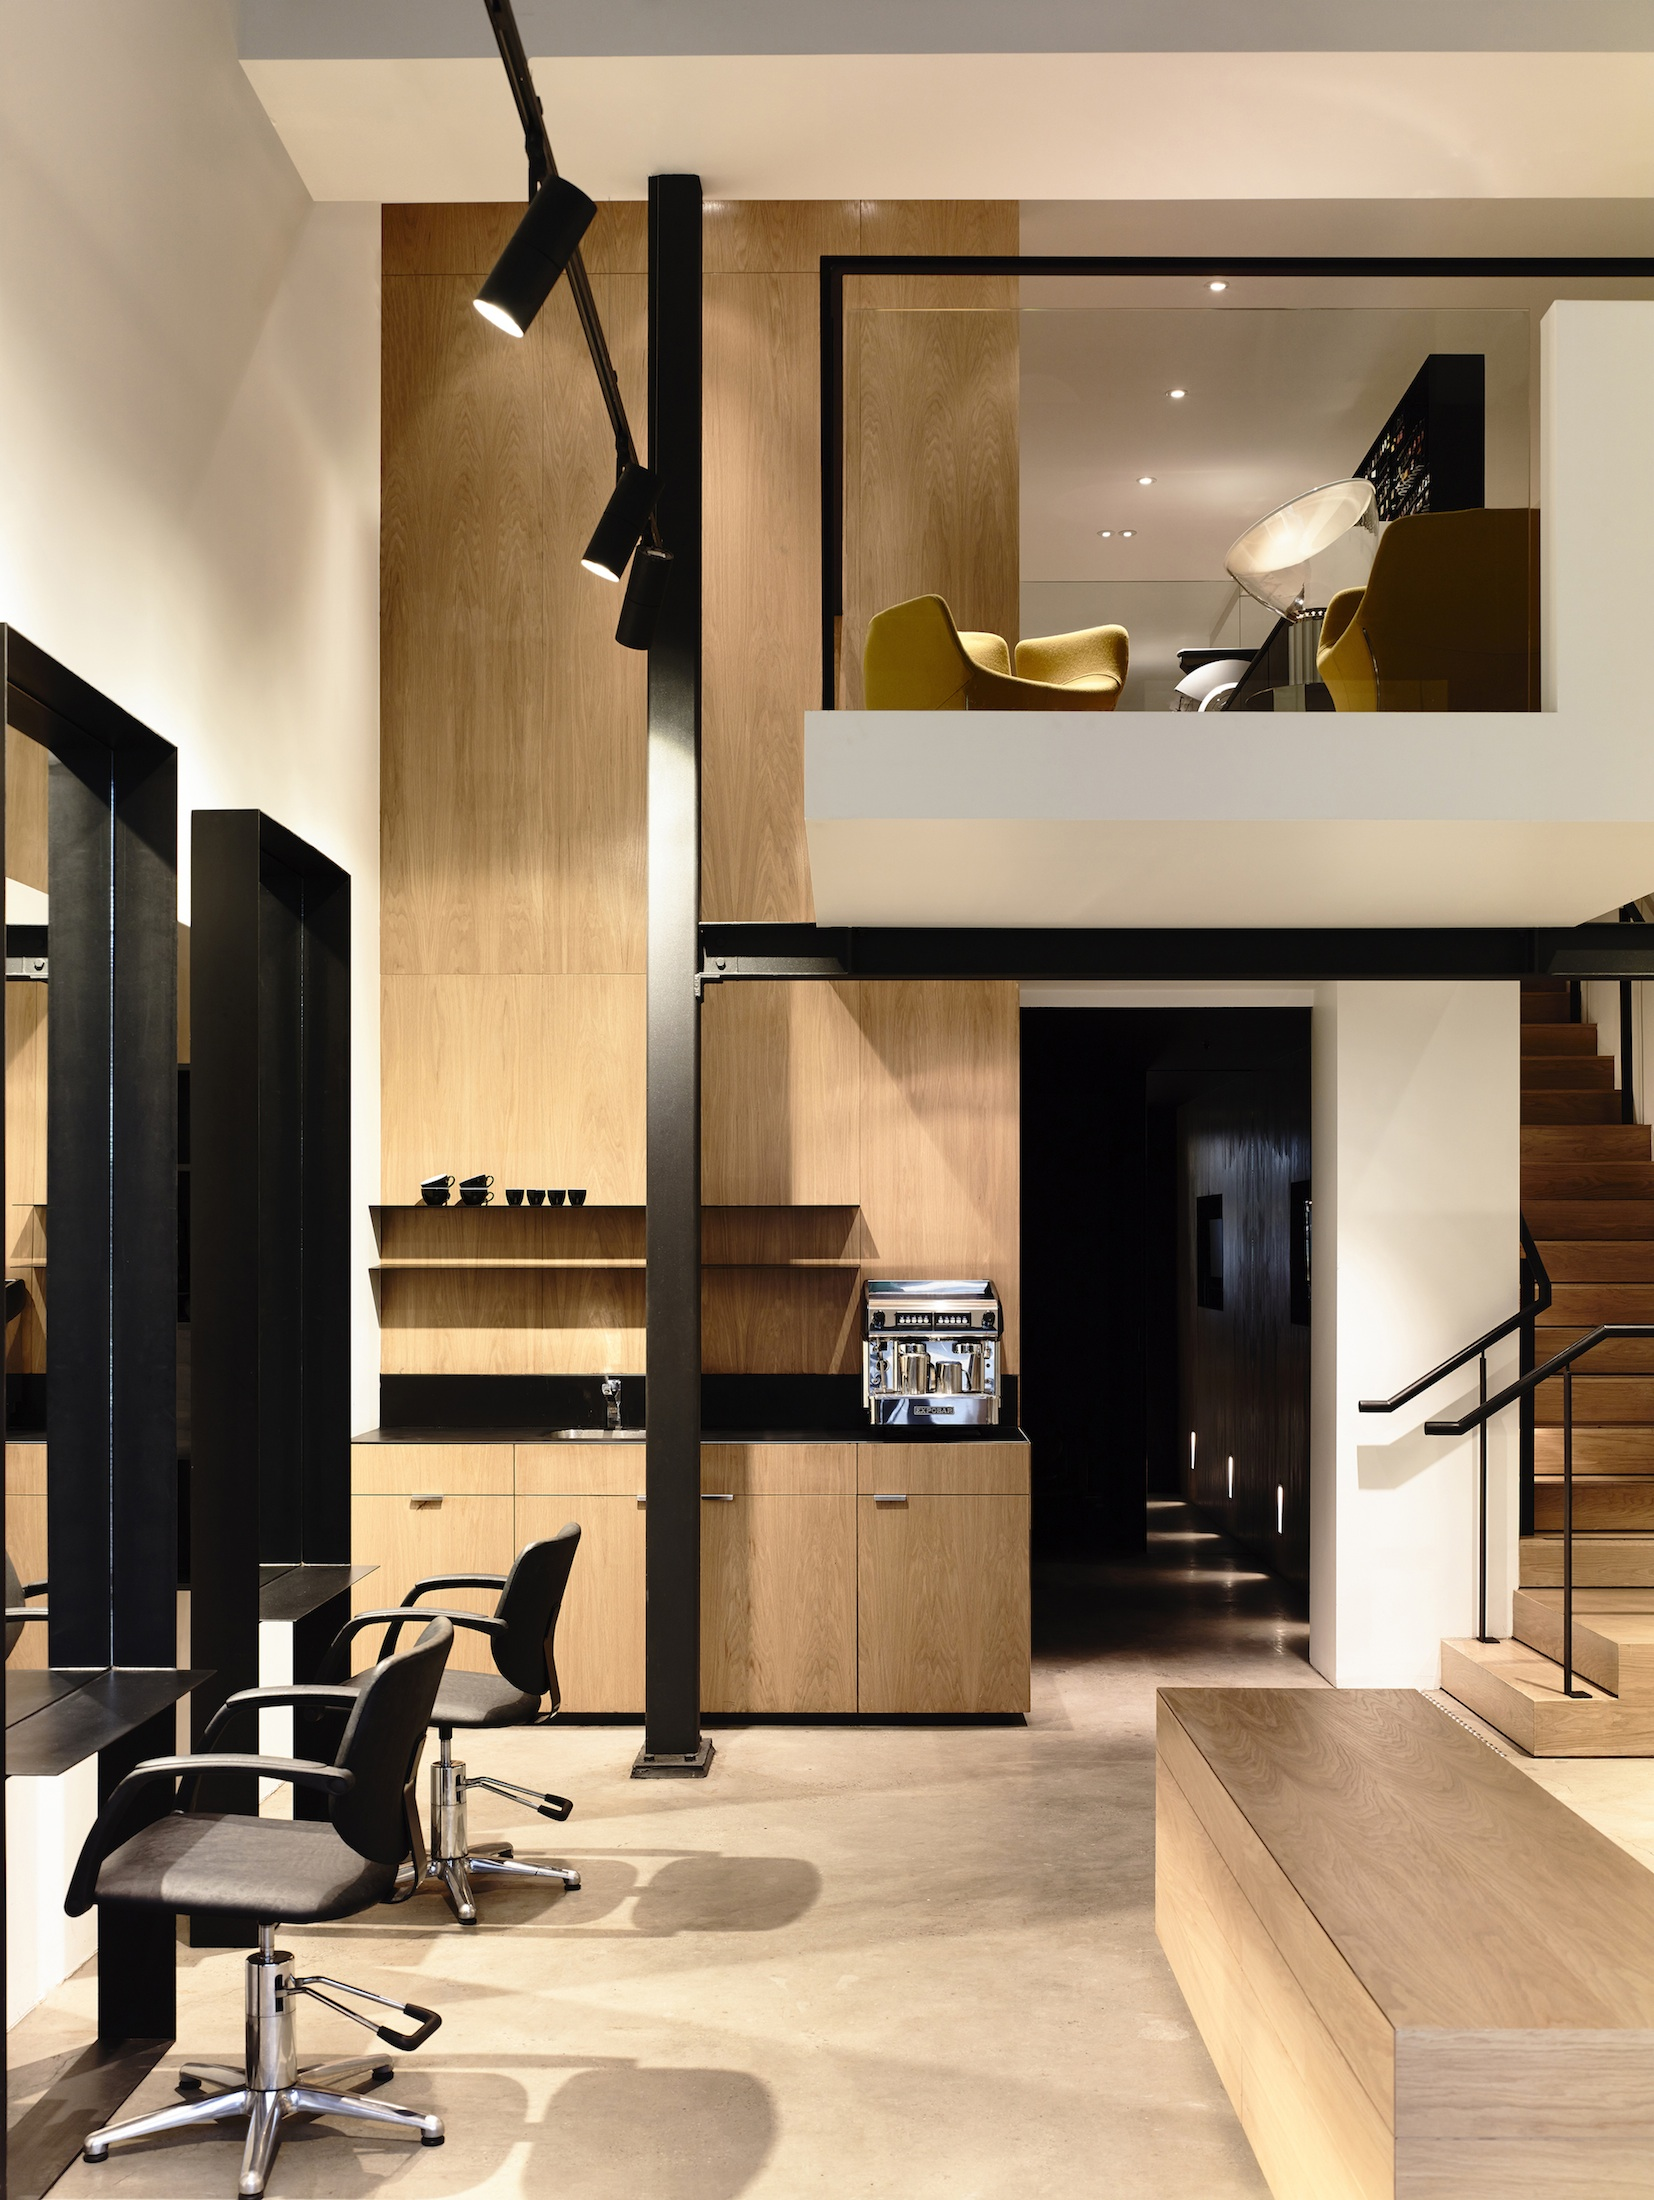 Salon Architecture Toni And Guy Salon Architizer